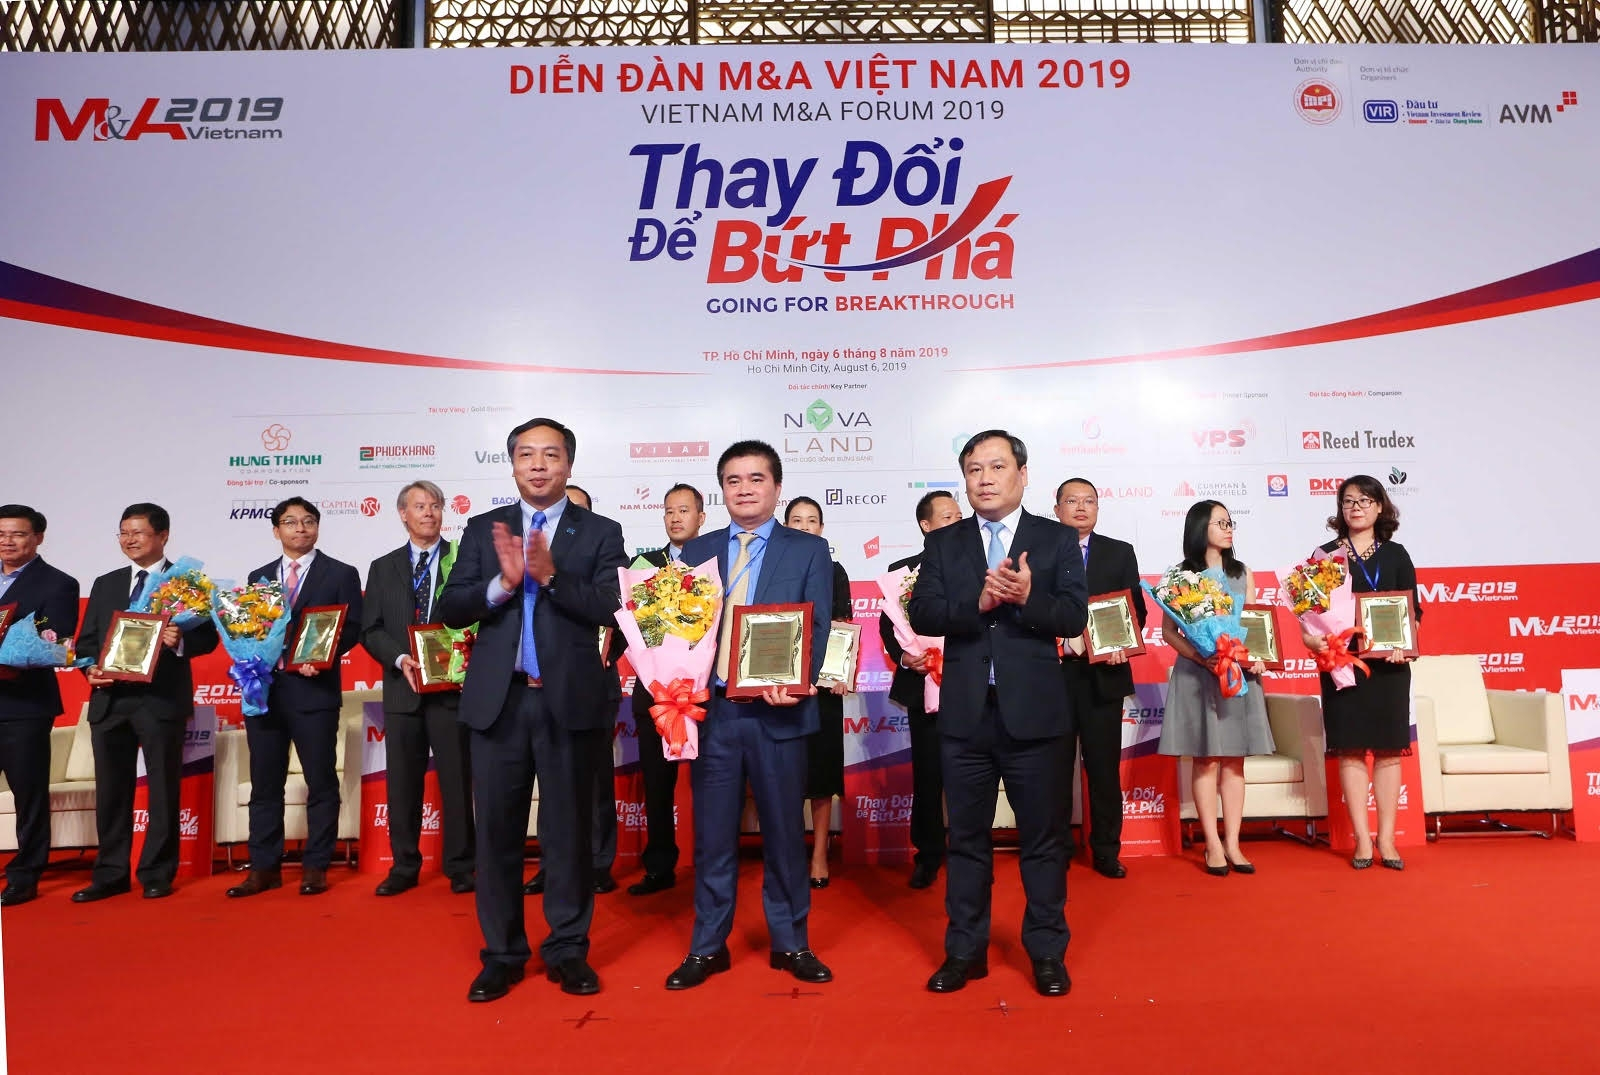 saigon hanoi securities shs honoured at vietnam ma forum 2019